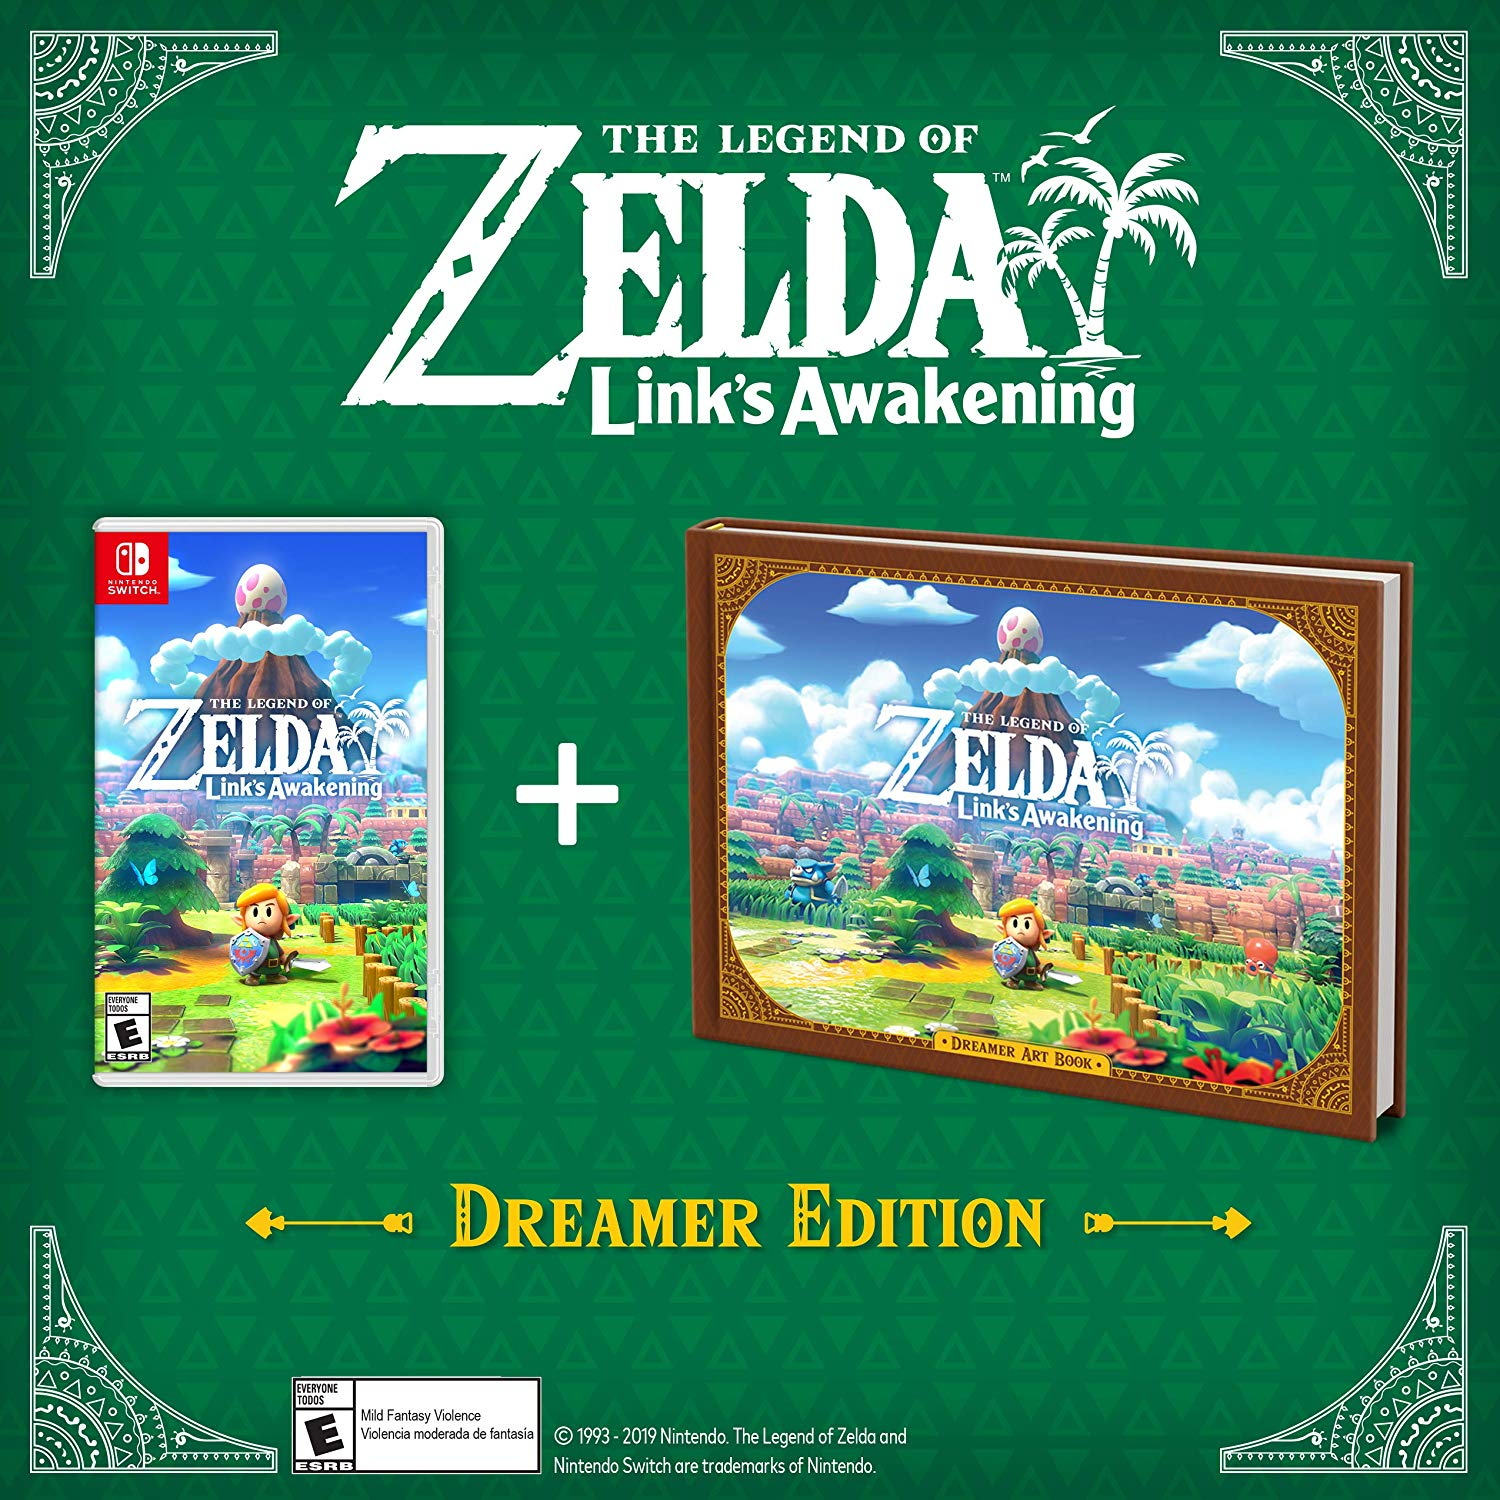 The Legend of Zelda Link's Awakening Dreamer Edition - Nintendo Switch